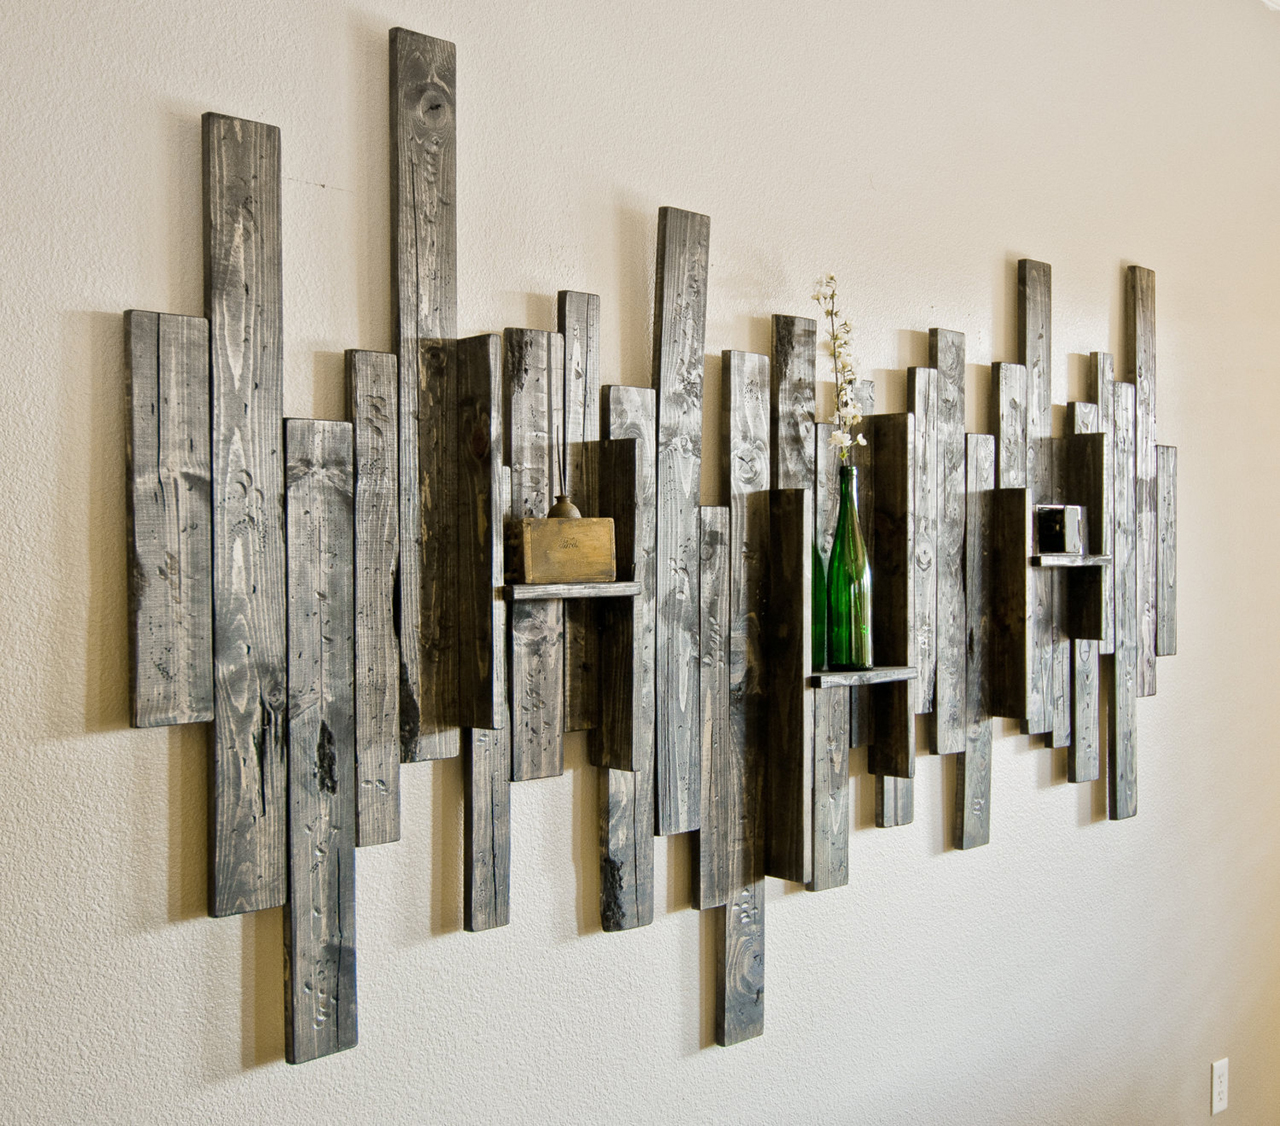 Abstract Wall Art and Shelf from Rustic Barn Wood & 27 Best Rustic Wall Decor Ideas and Designs for 2018